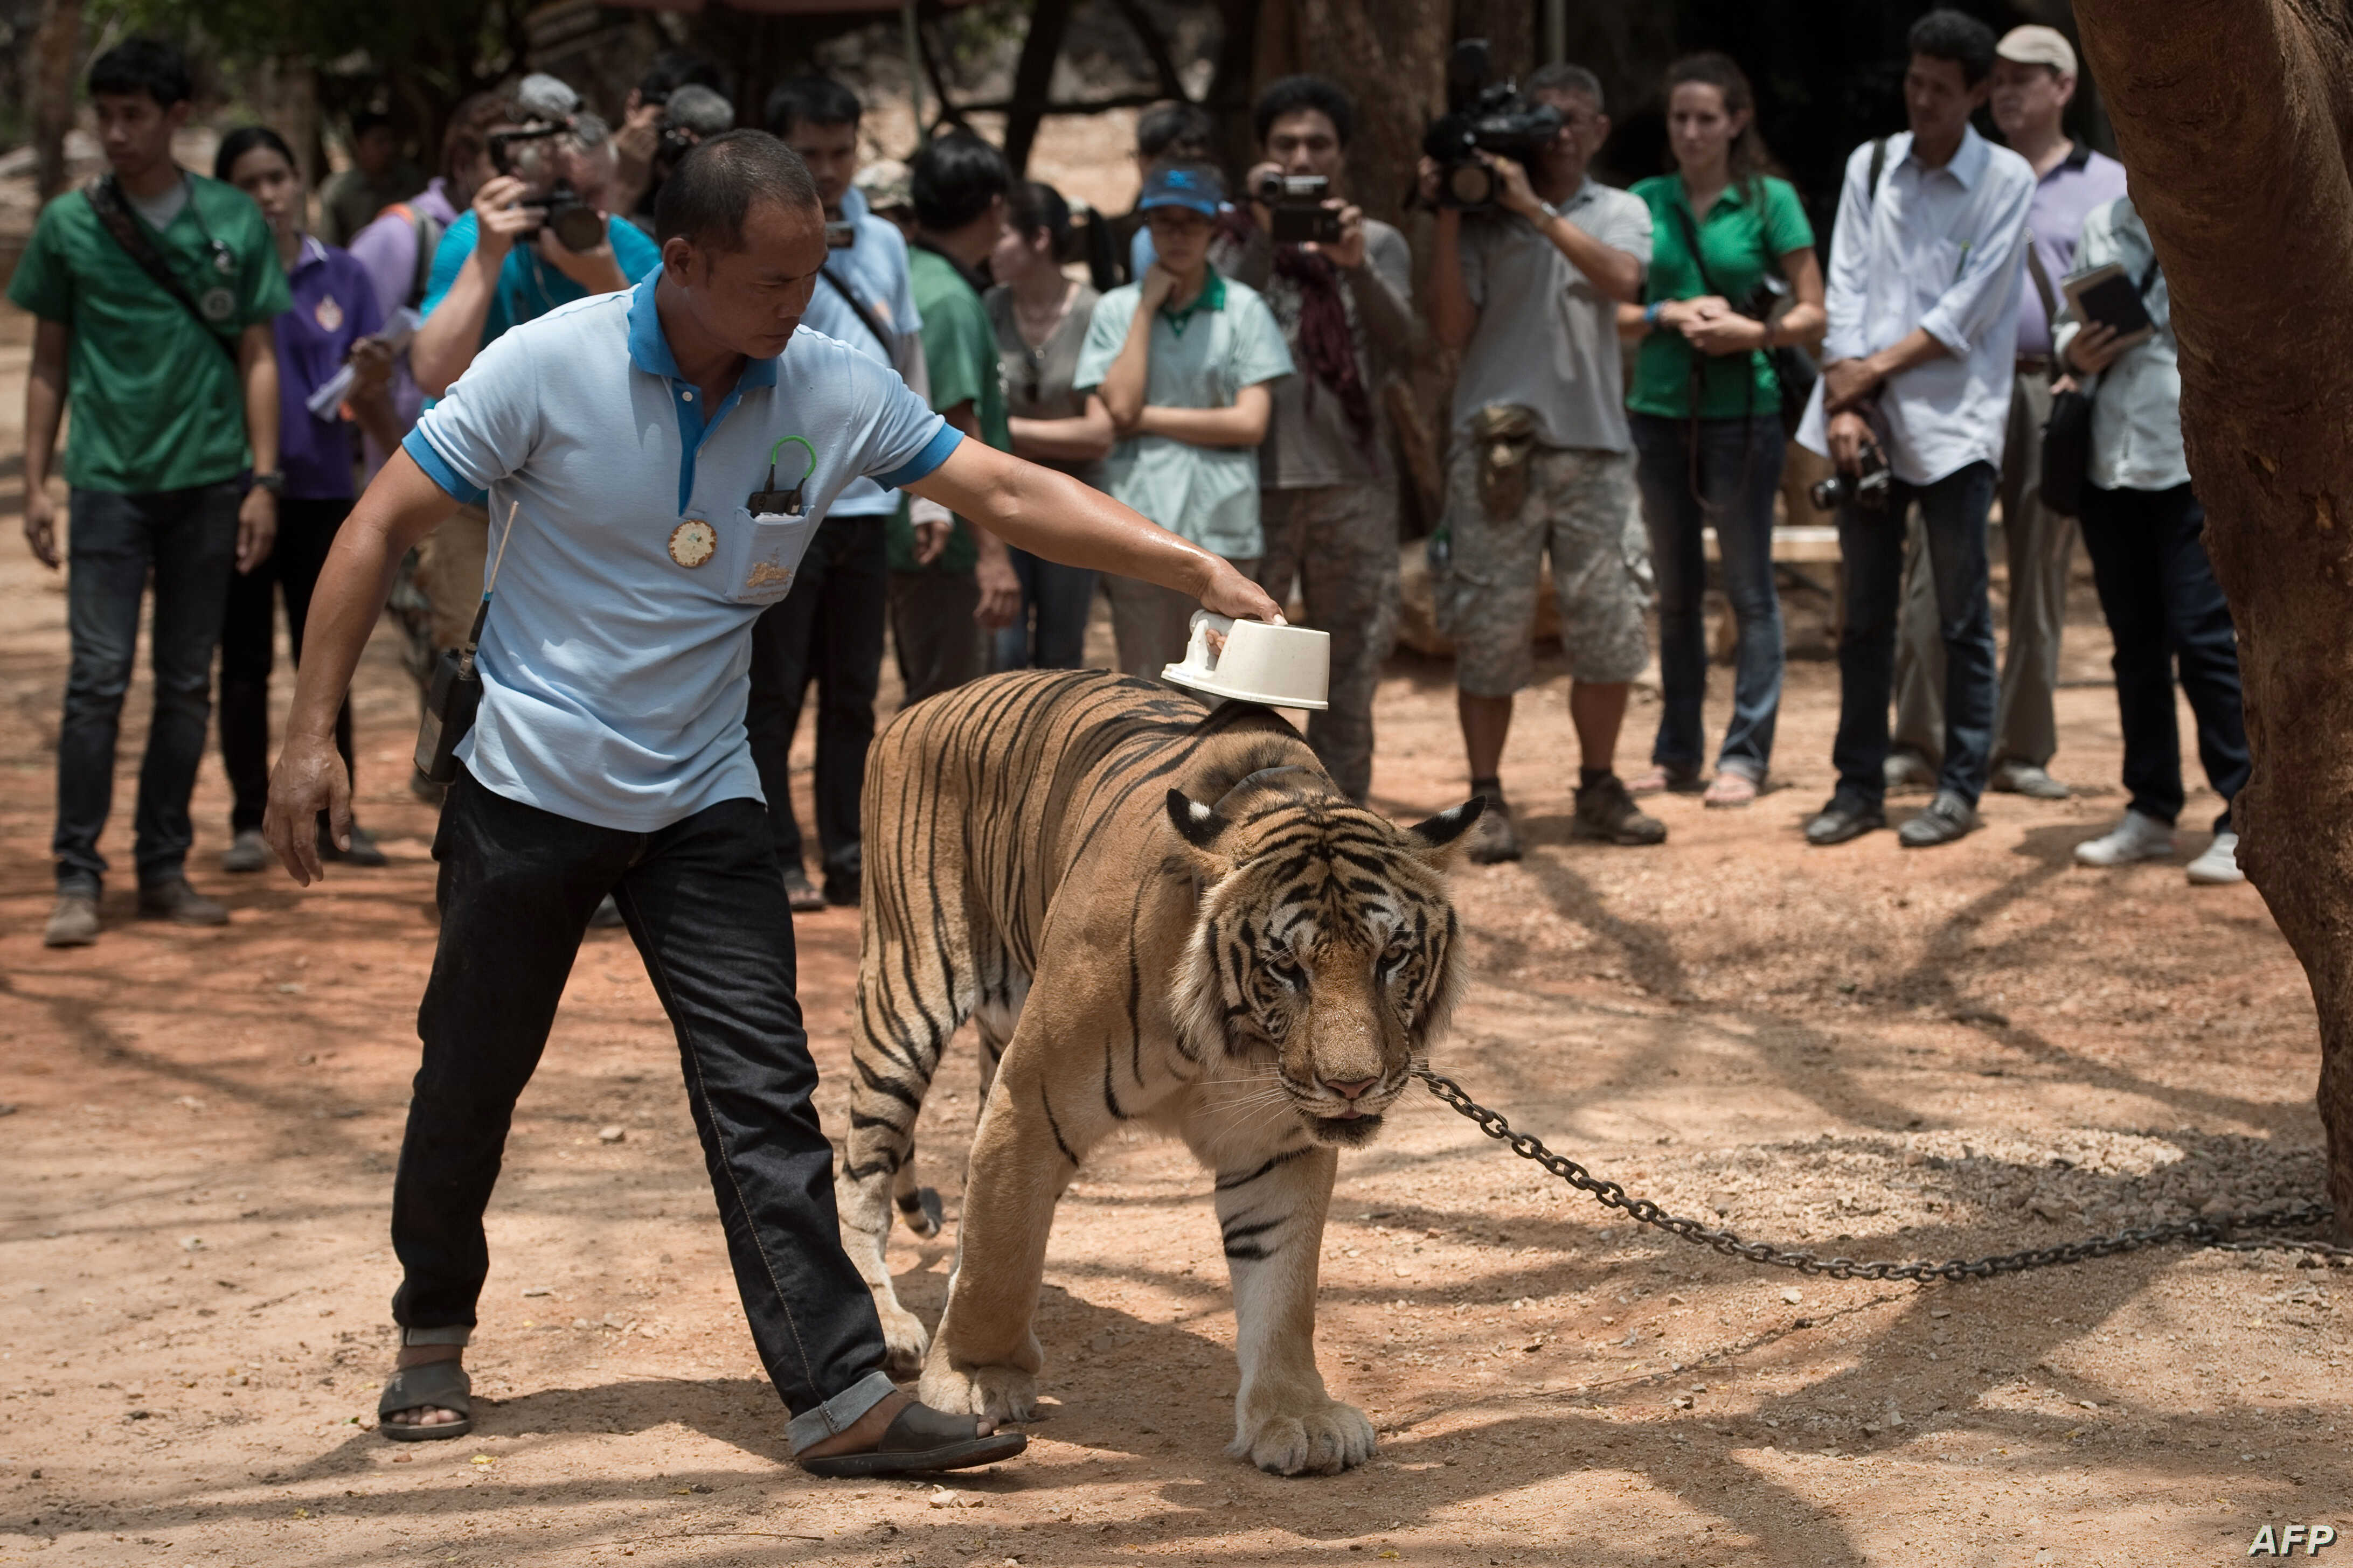 Tiger Temple Thailand Unfall